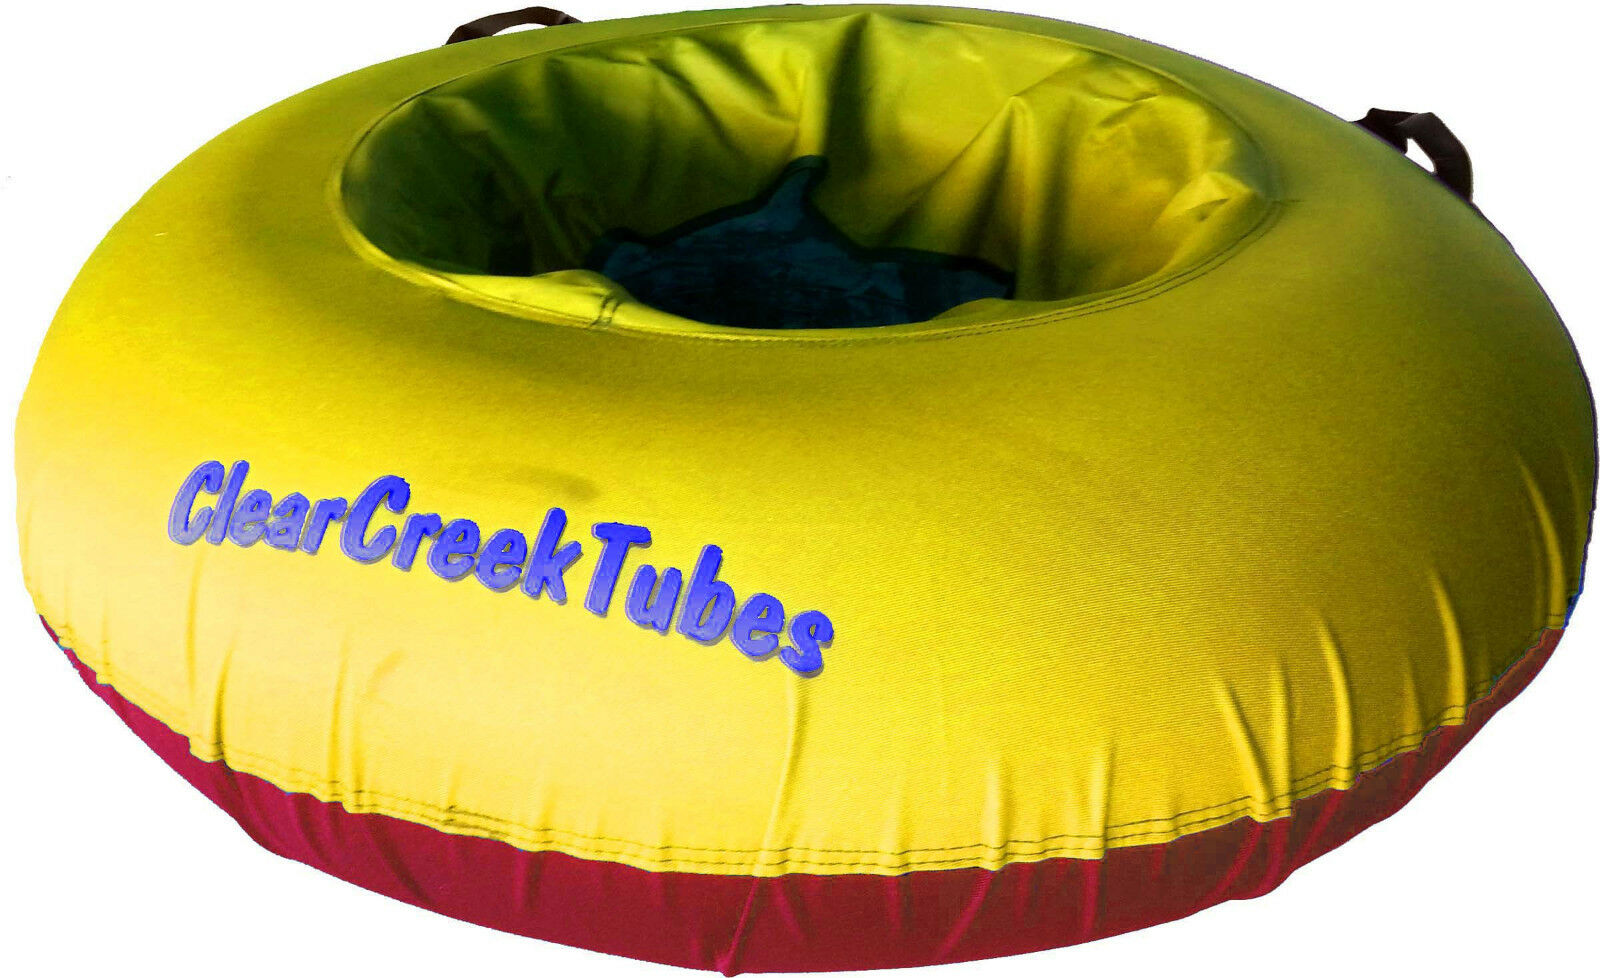 ClearCreekTubes River Tube  and Cover Combo Huge  hot sale online